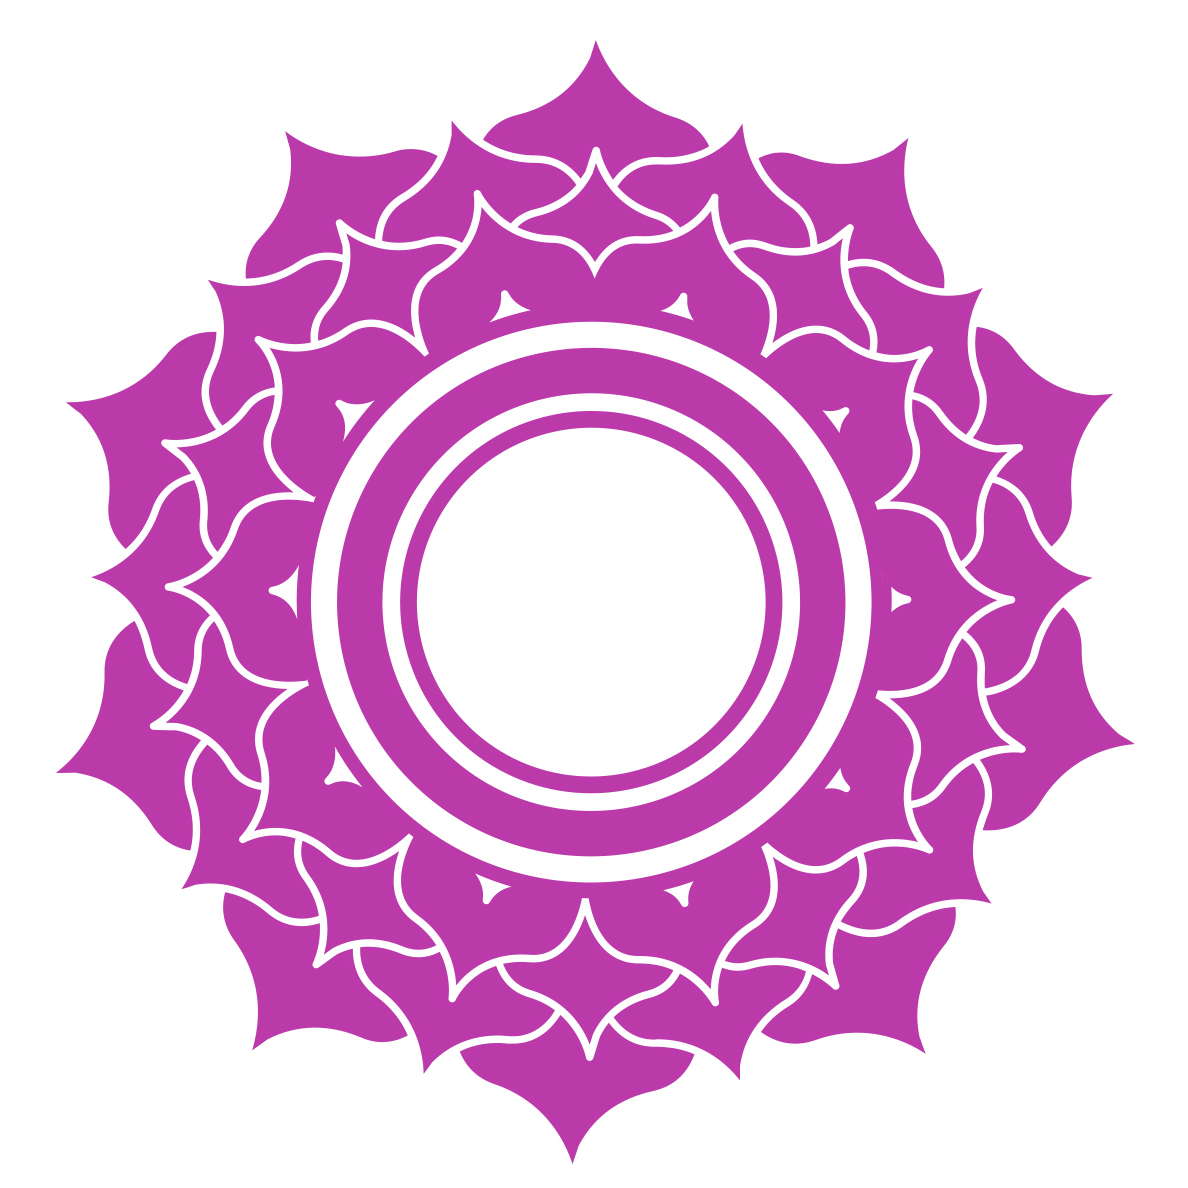 crown chakra symbol - all about chakras